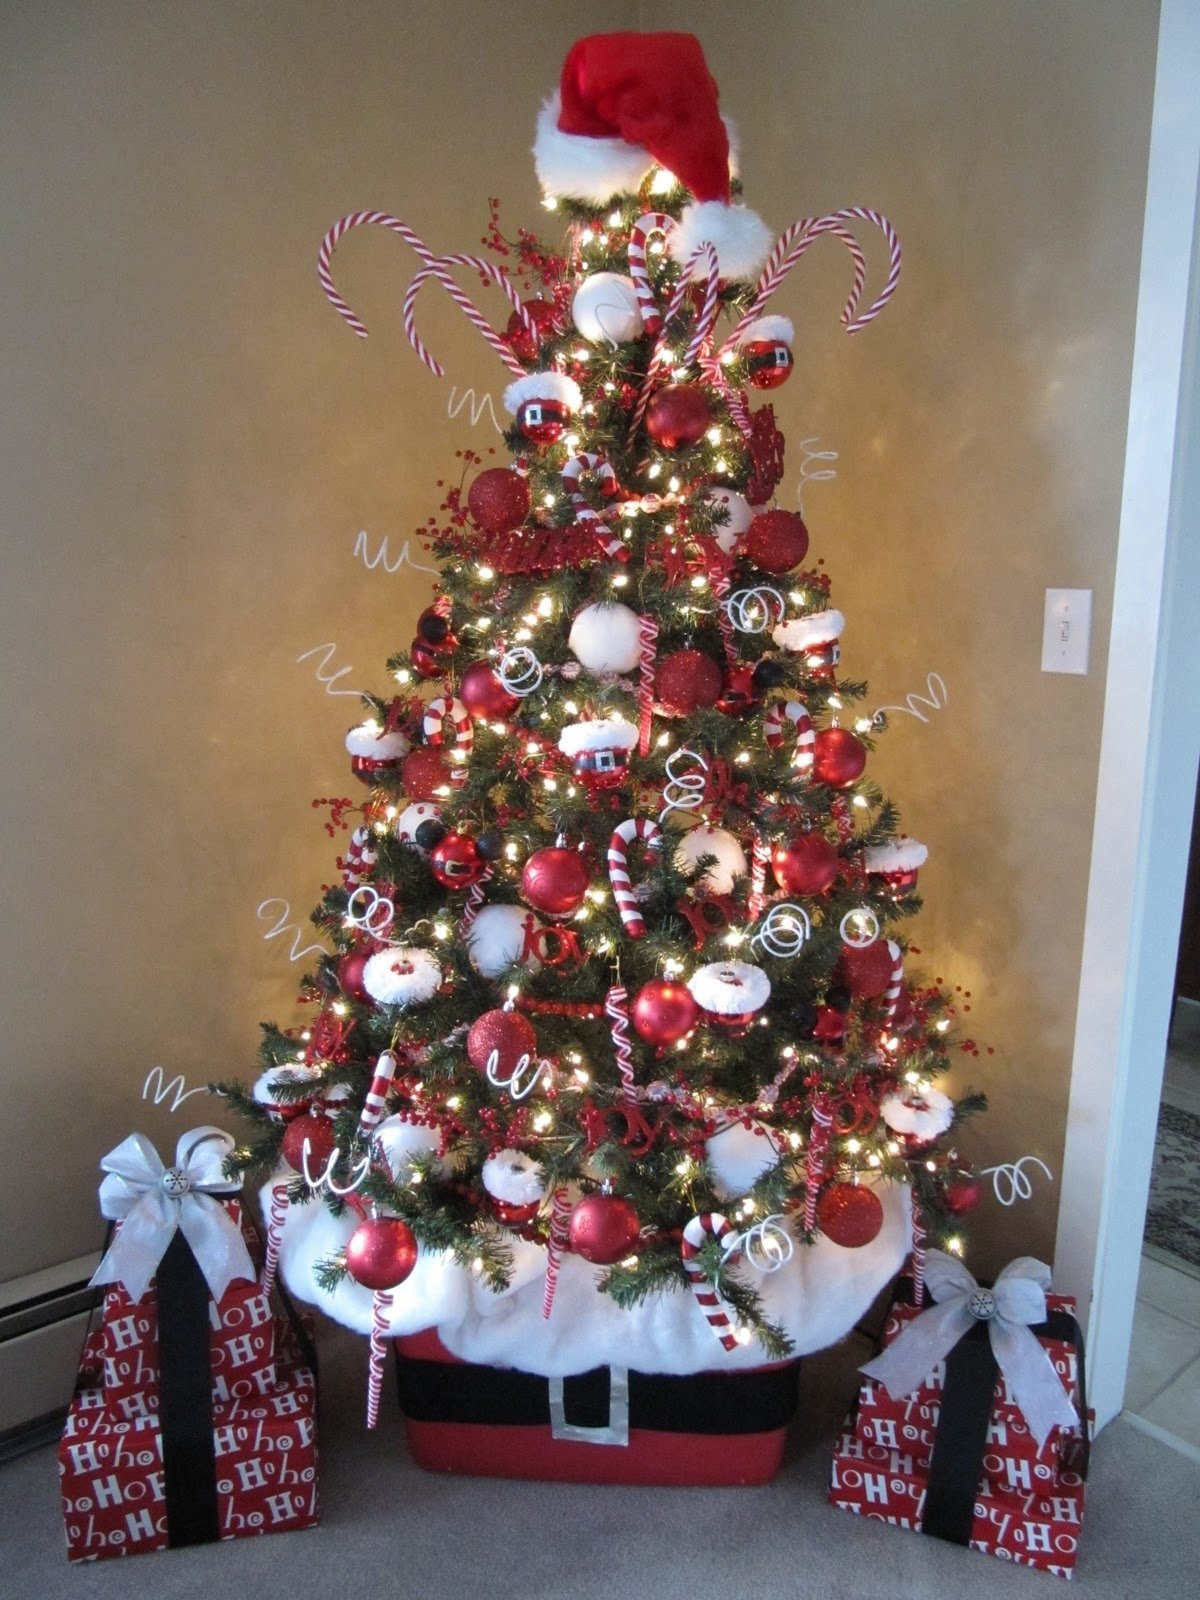 10 Fashionable Ideas To Decorate A Christmas Tree christmas tree decorations ideas and tips to decorate it decoration 2 2020